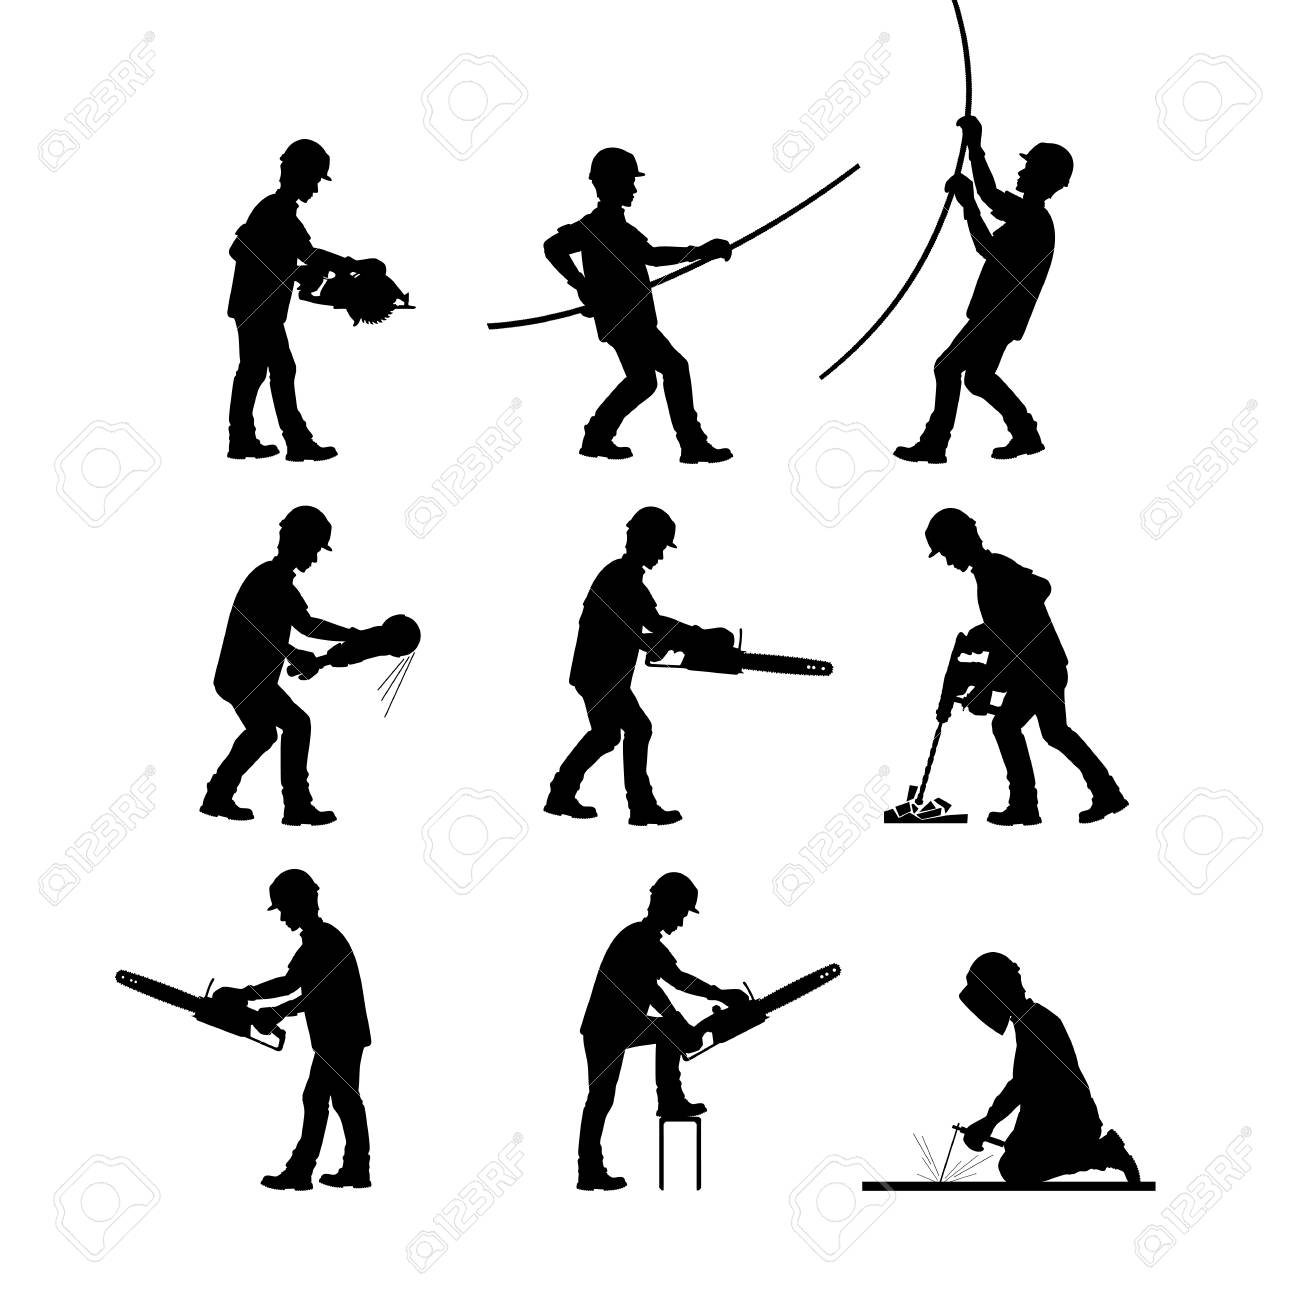 A construction worker at work. Silhouettes in different poses with and without tools. Vector illustration. - 96137768